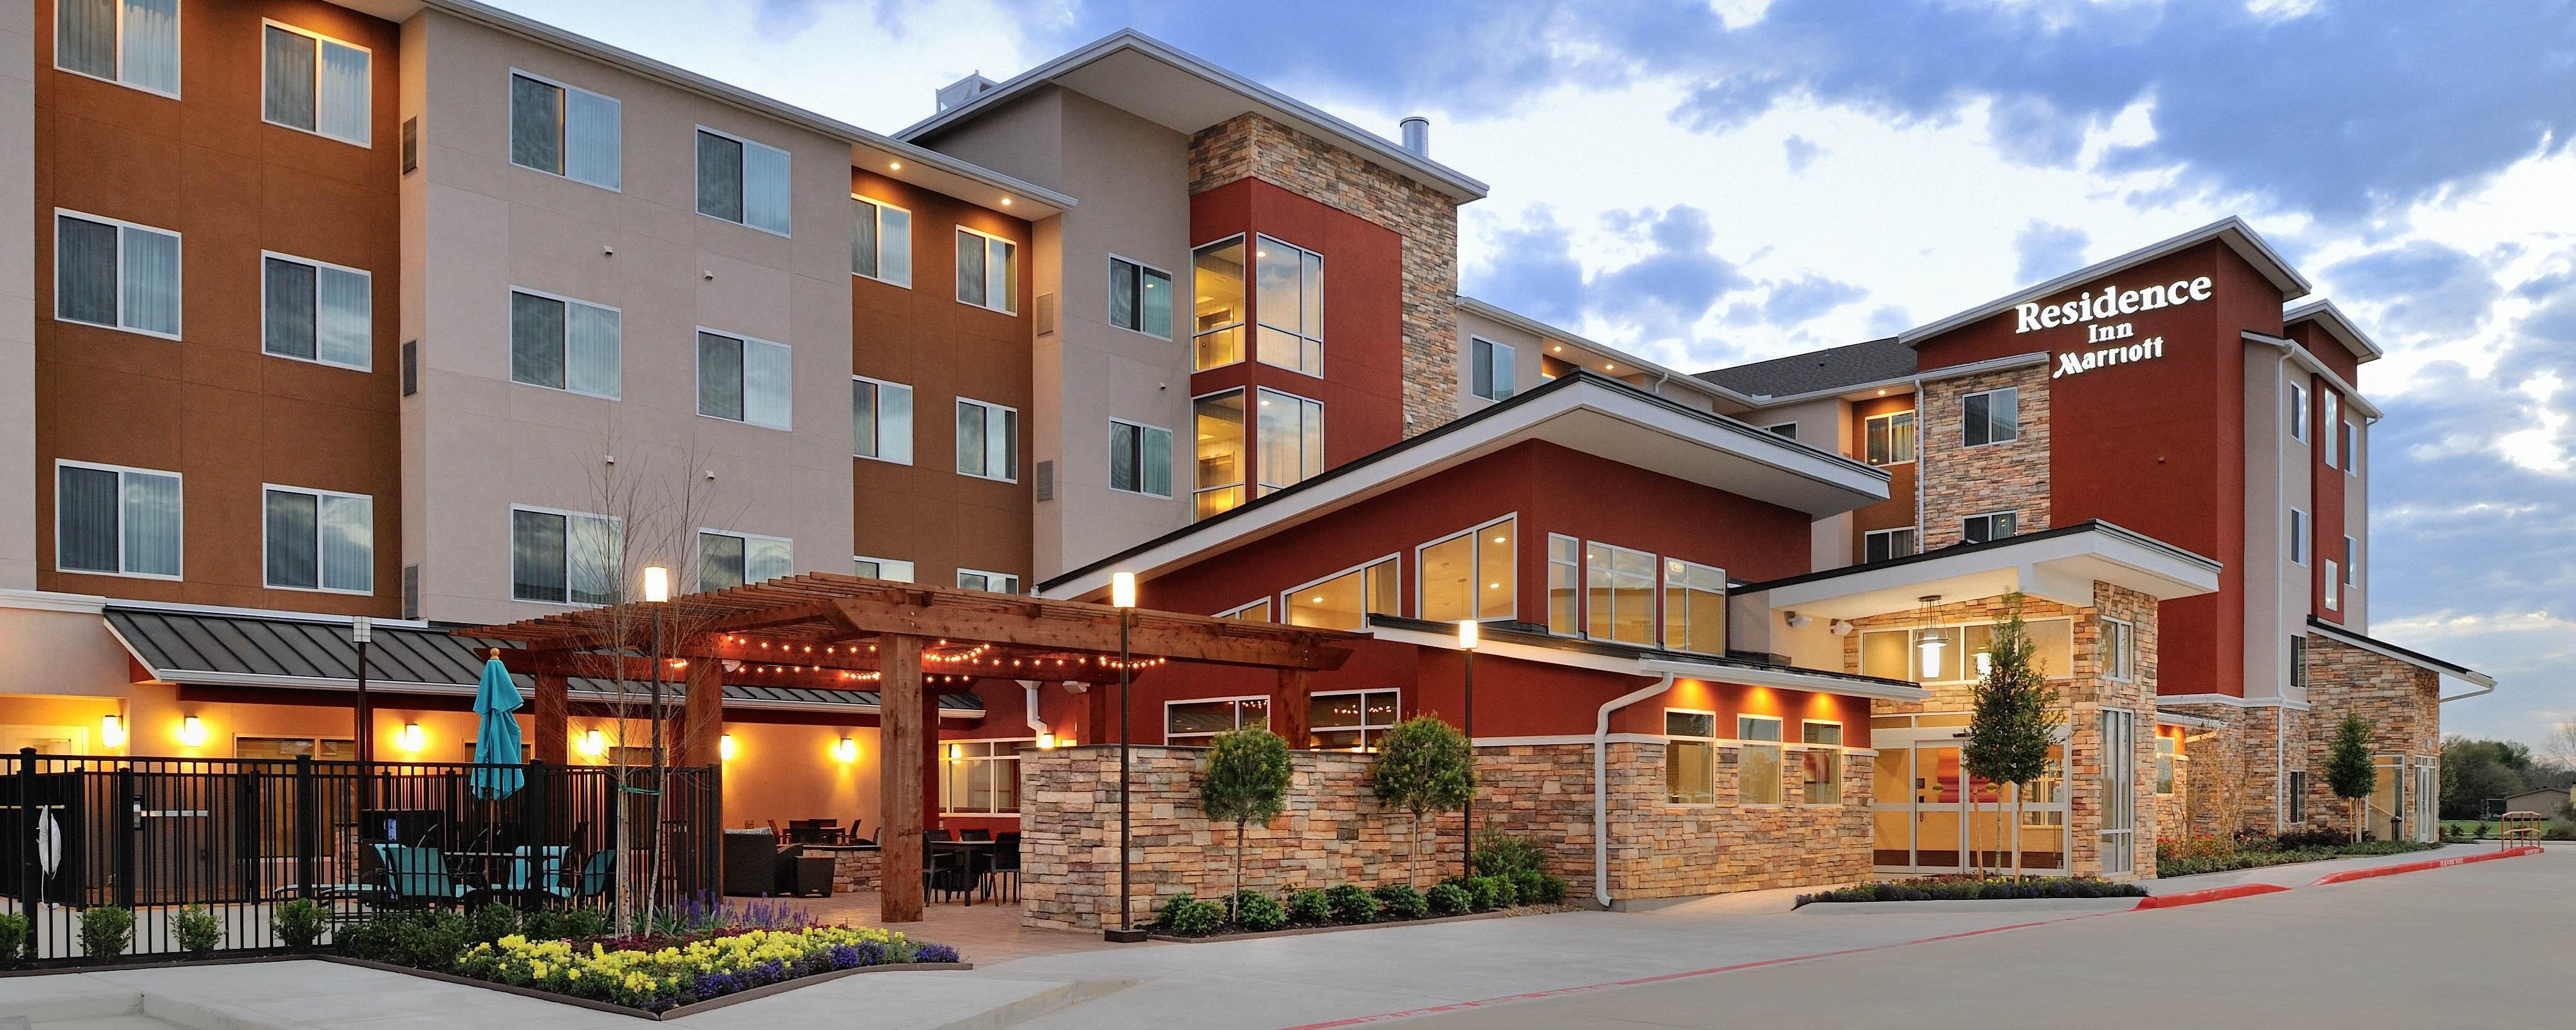 Extended Hotels In Houston Tx